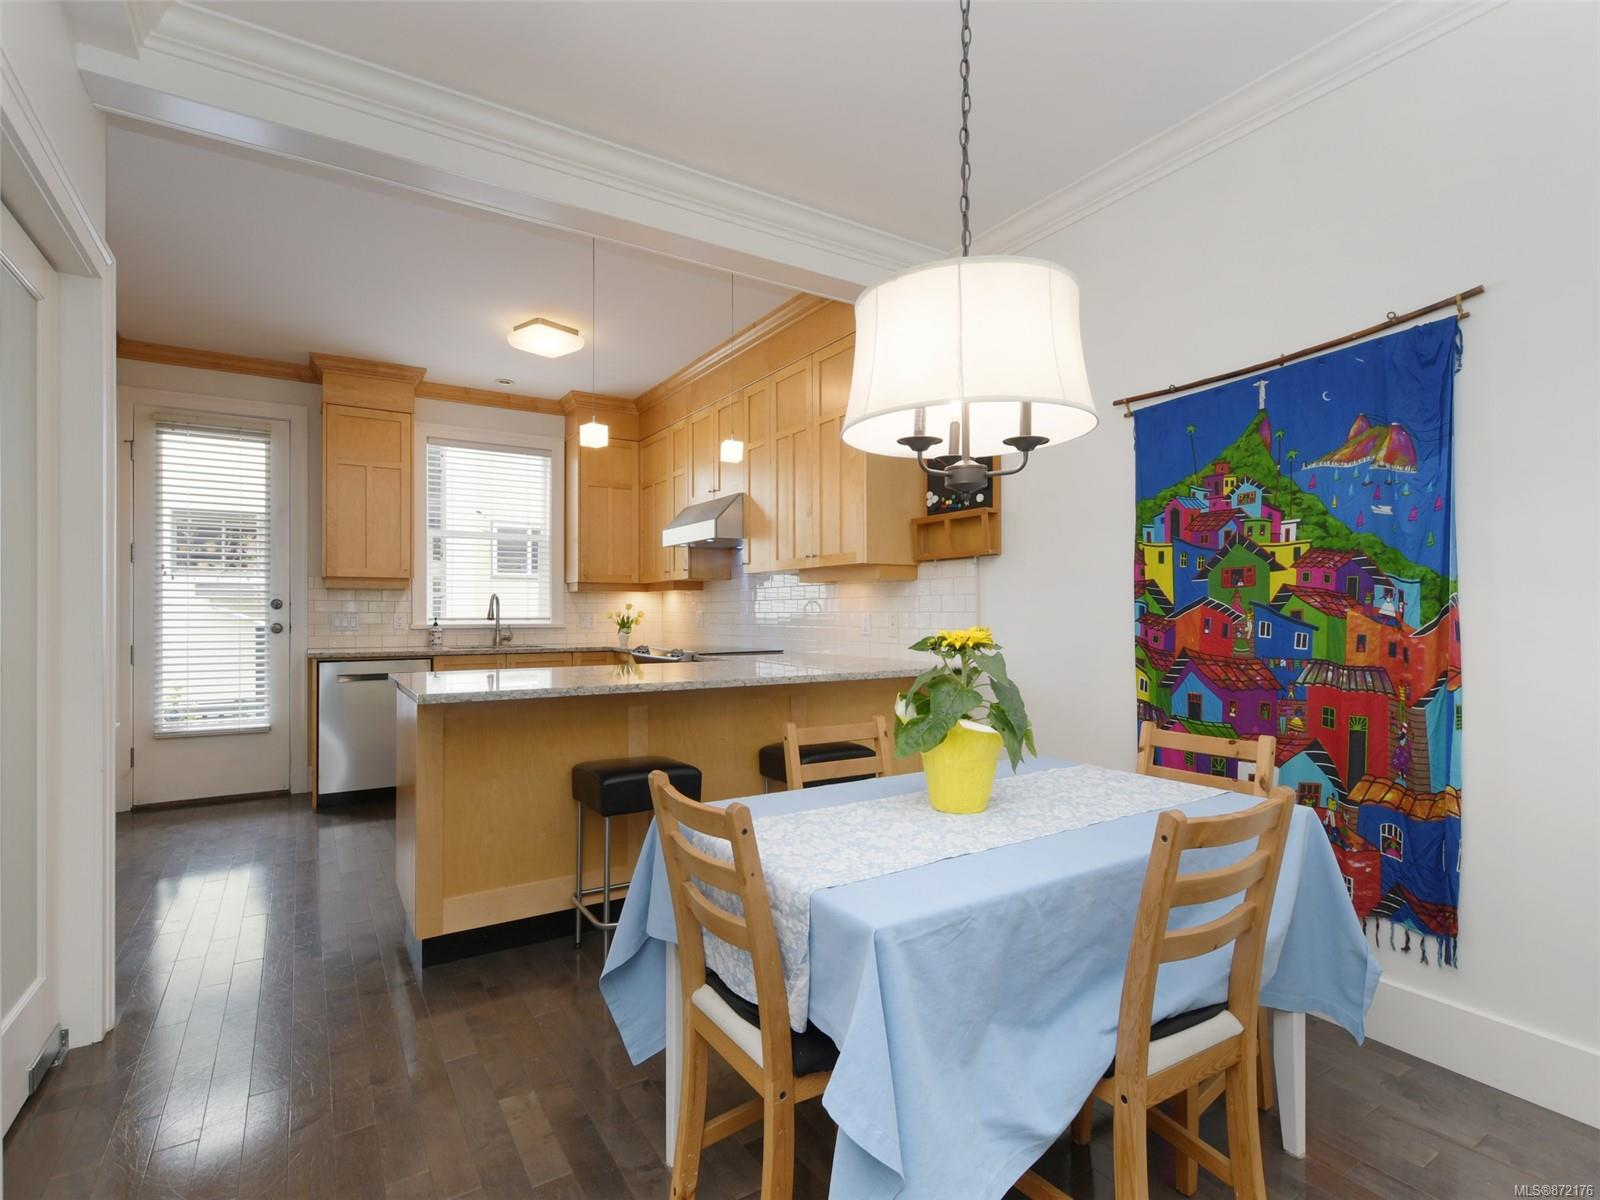 Photo 4 at 2 - 1030 Carberry Gdns, Rockland, Victoria